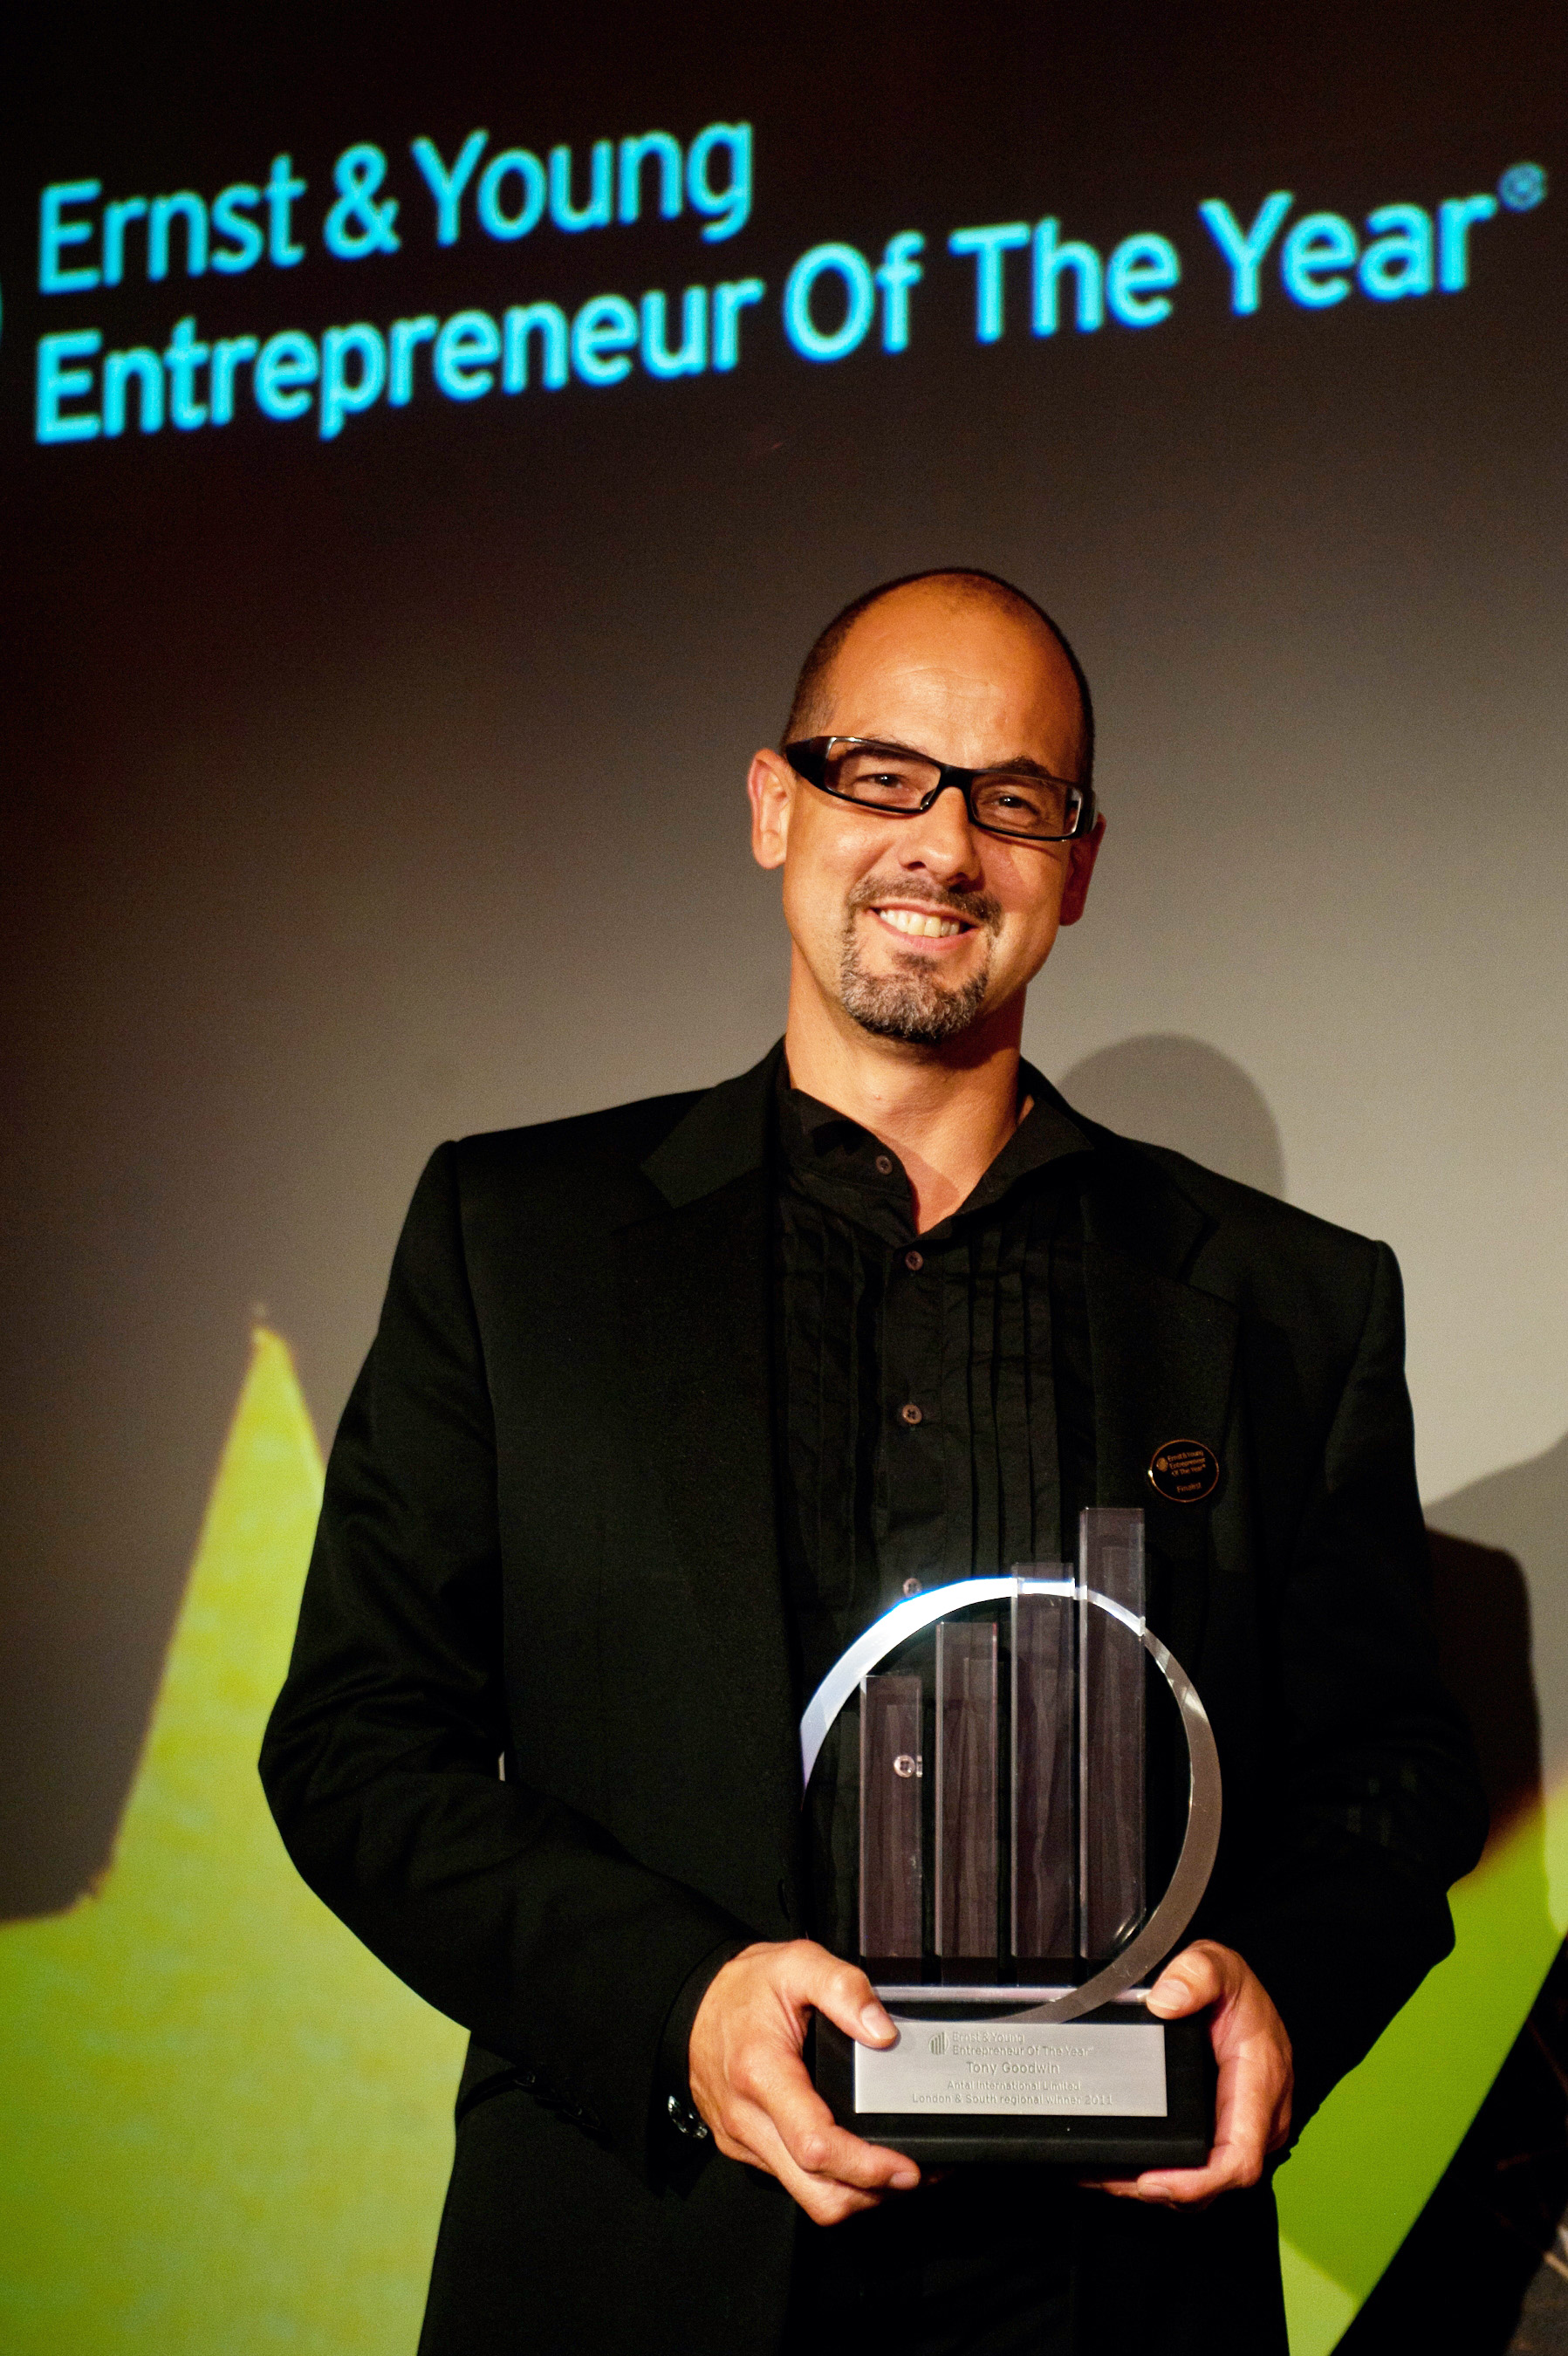 Tony Goodwin - E&Y 2011